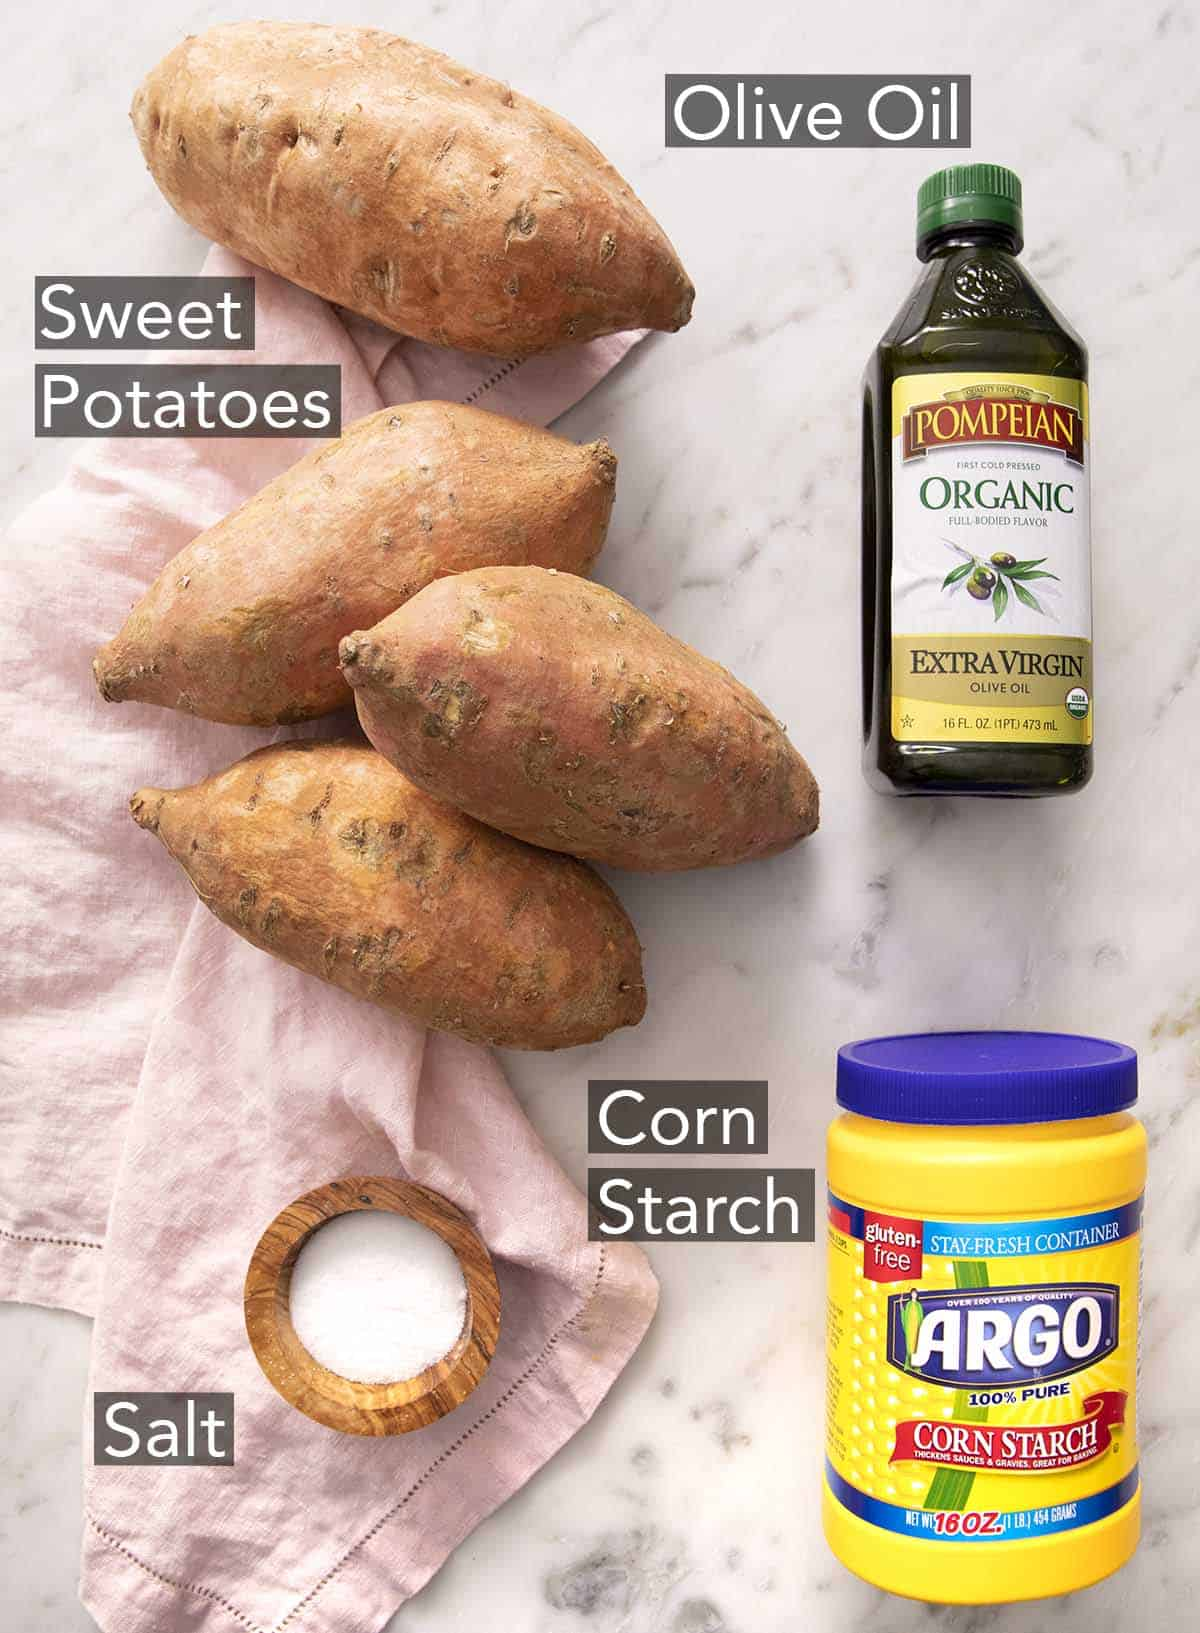 Ingredients for making sweet potato fries on a counter.